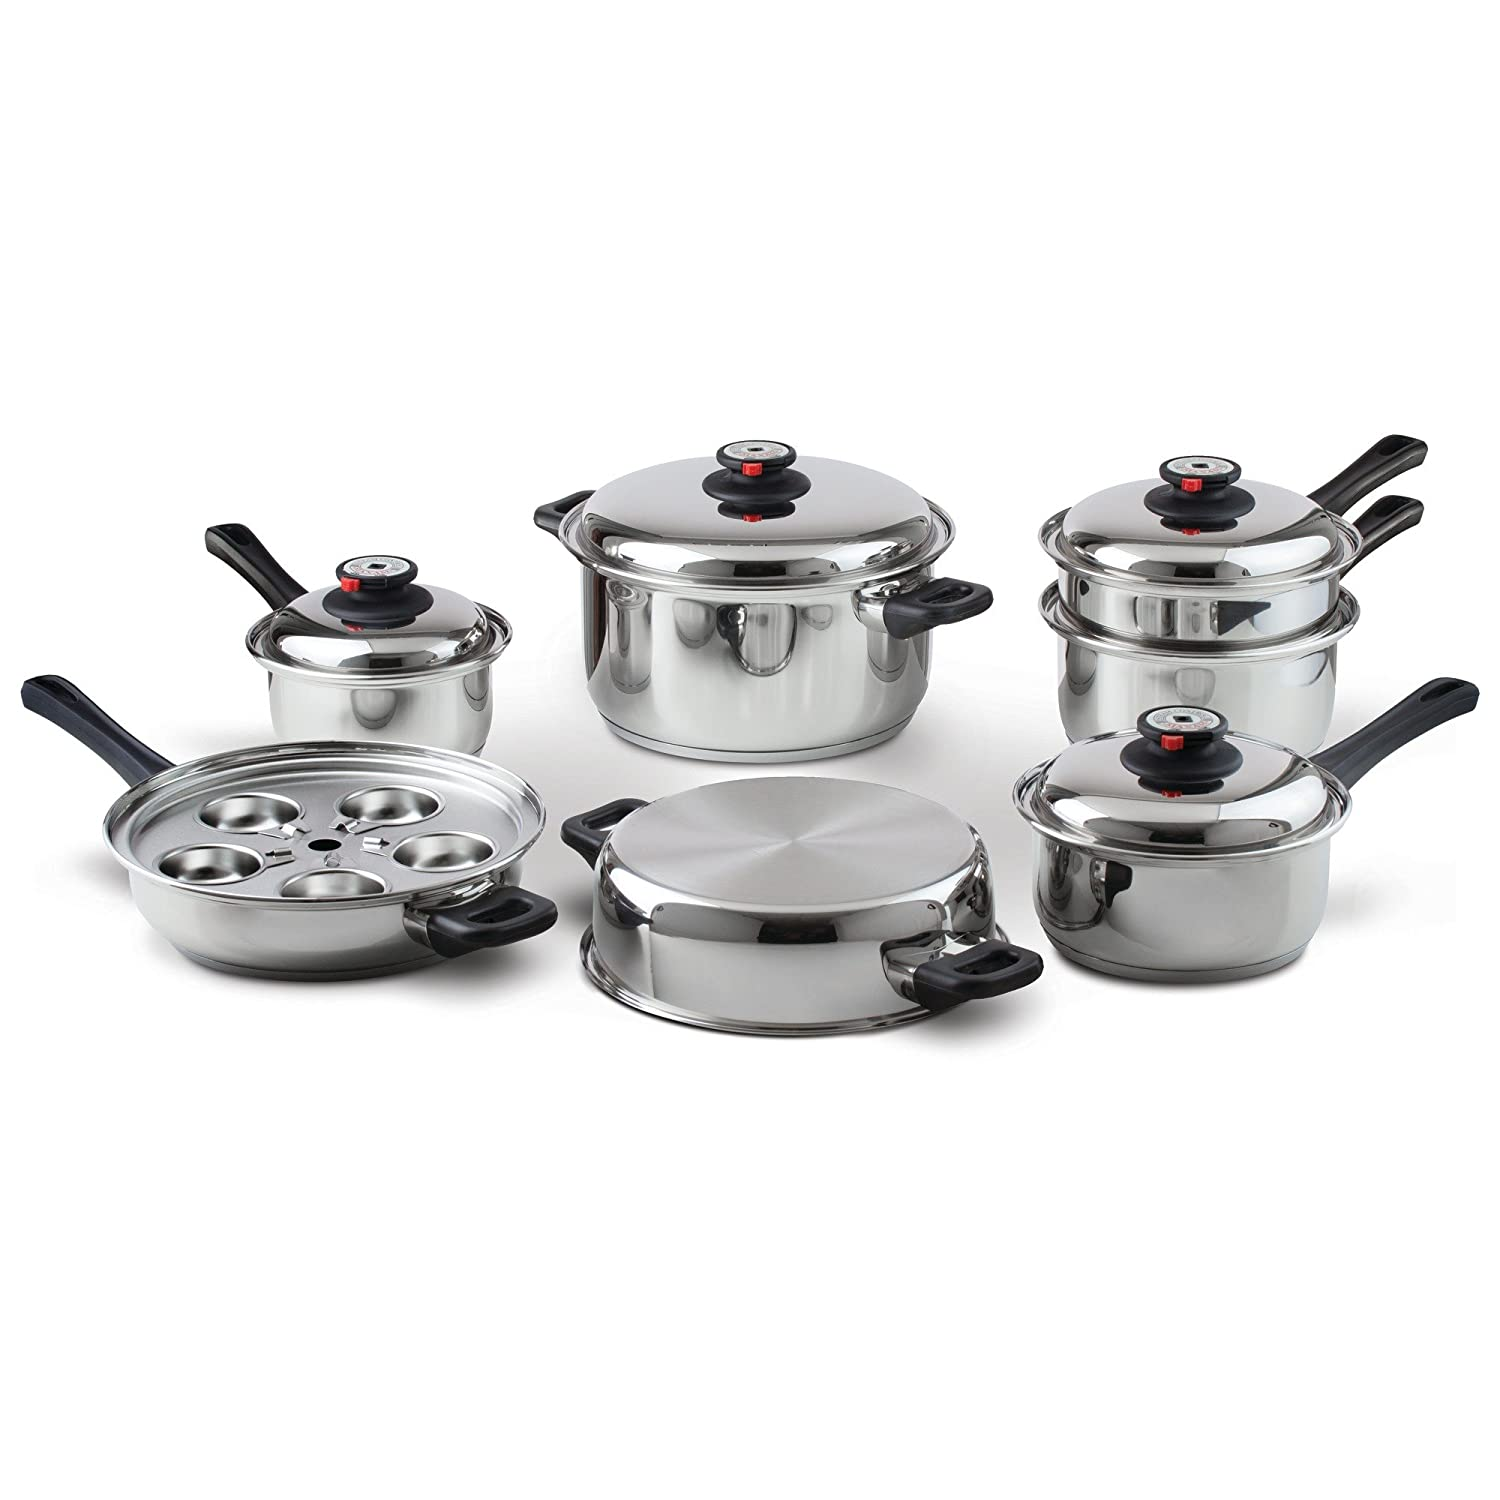 Maxam 9-Element Waterless Cookware Set, Durable Stainless Steel Construction with Heat and Cold Resistant Handles, 17-Pieces